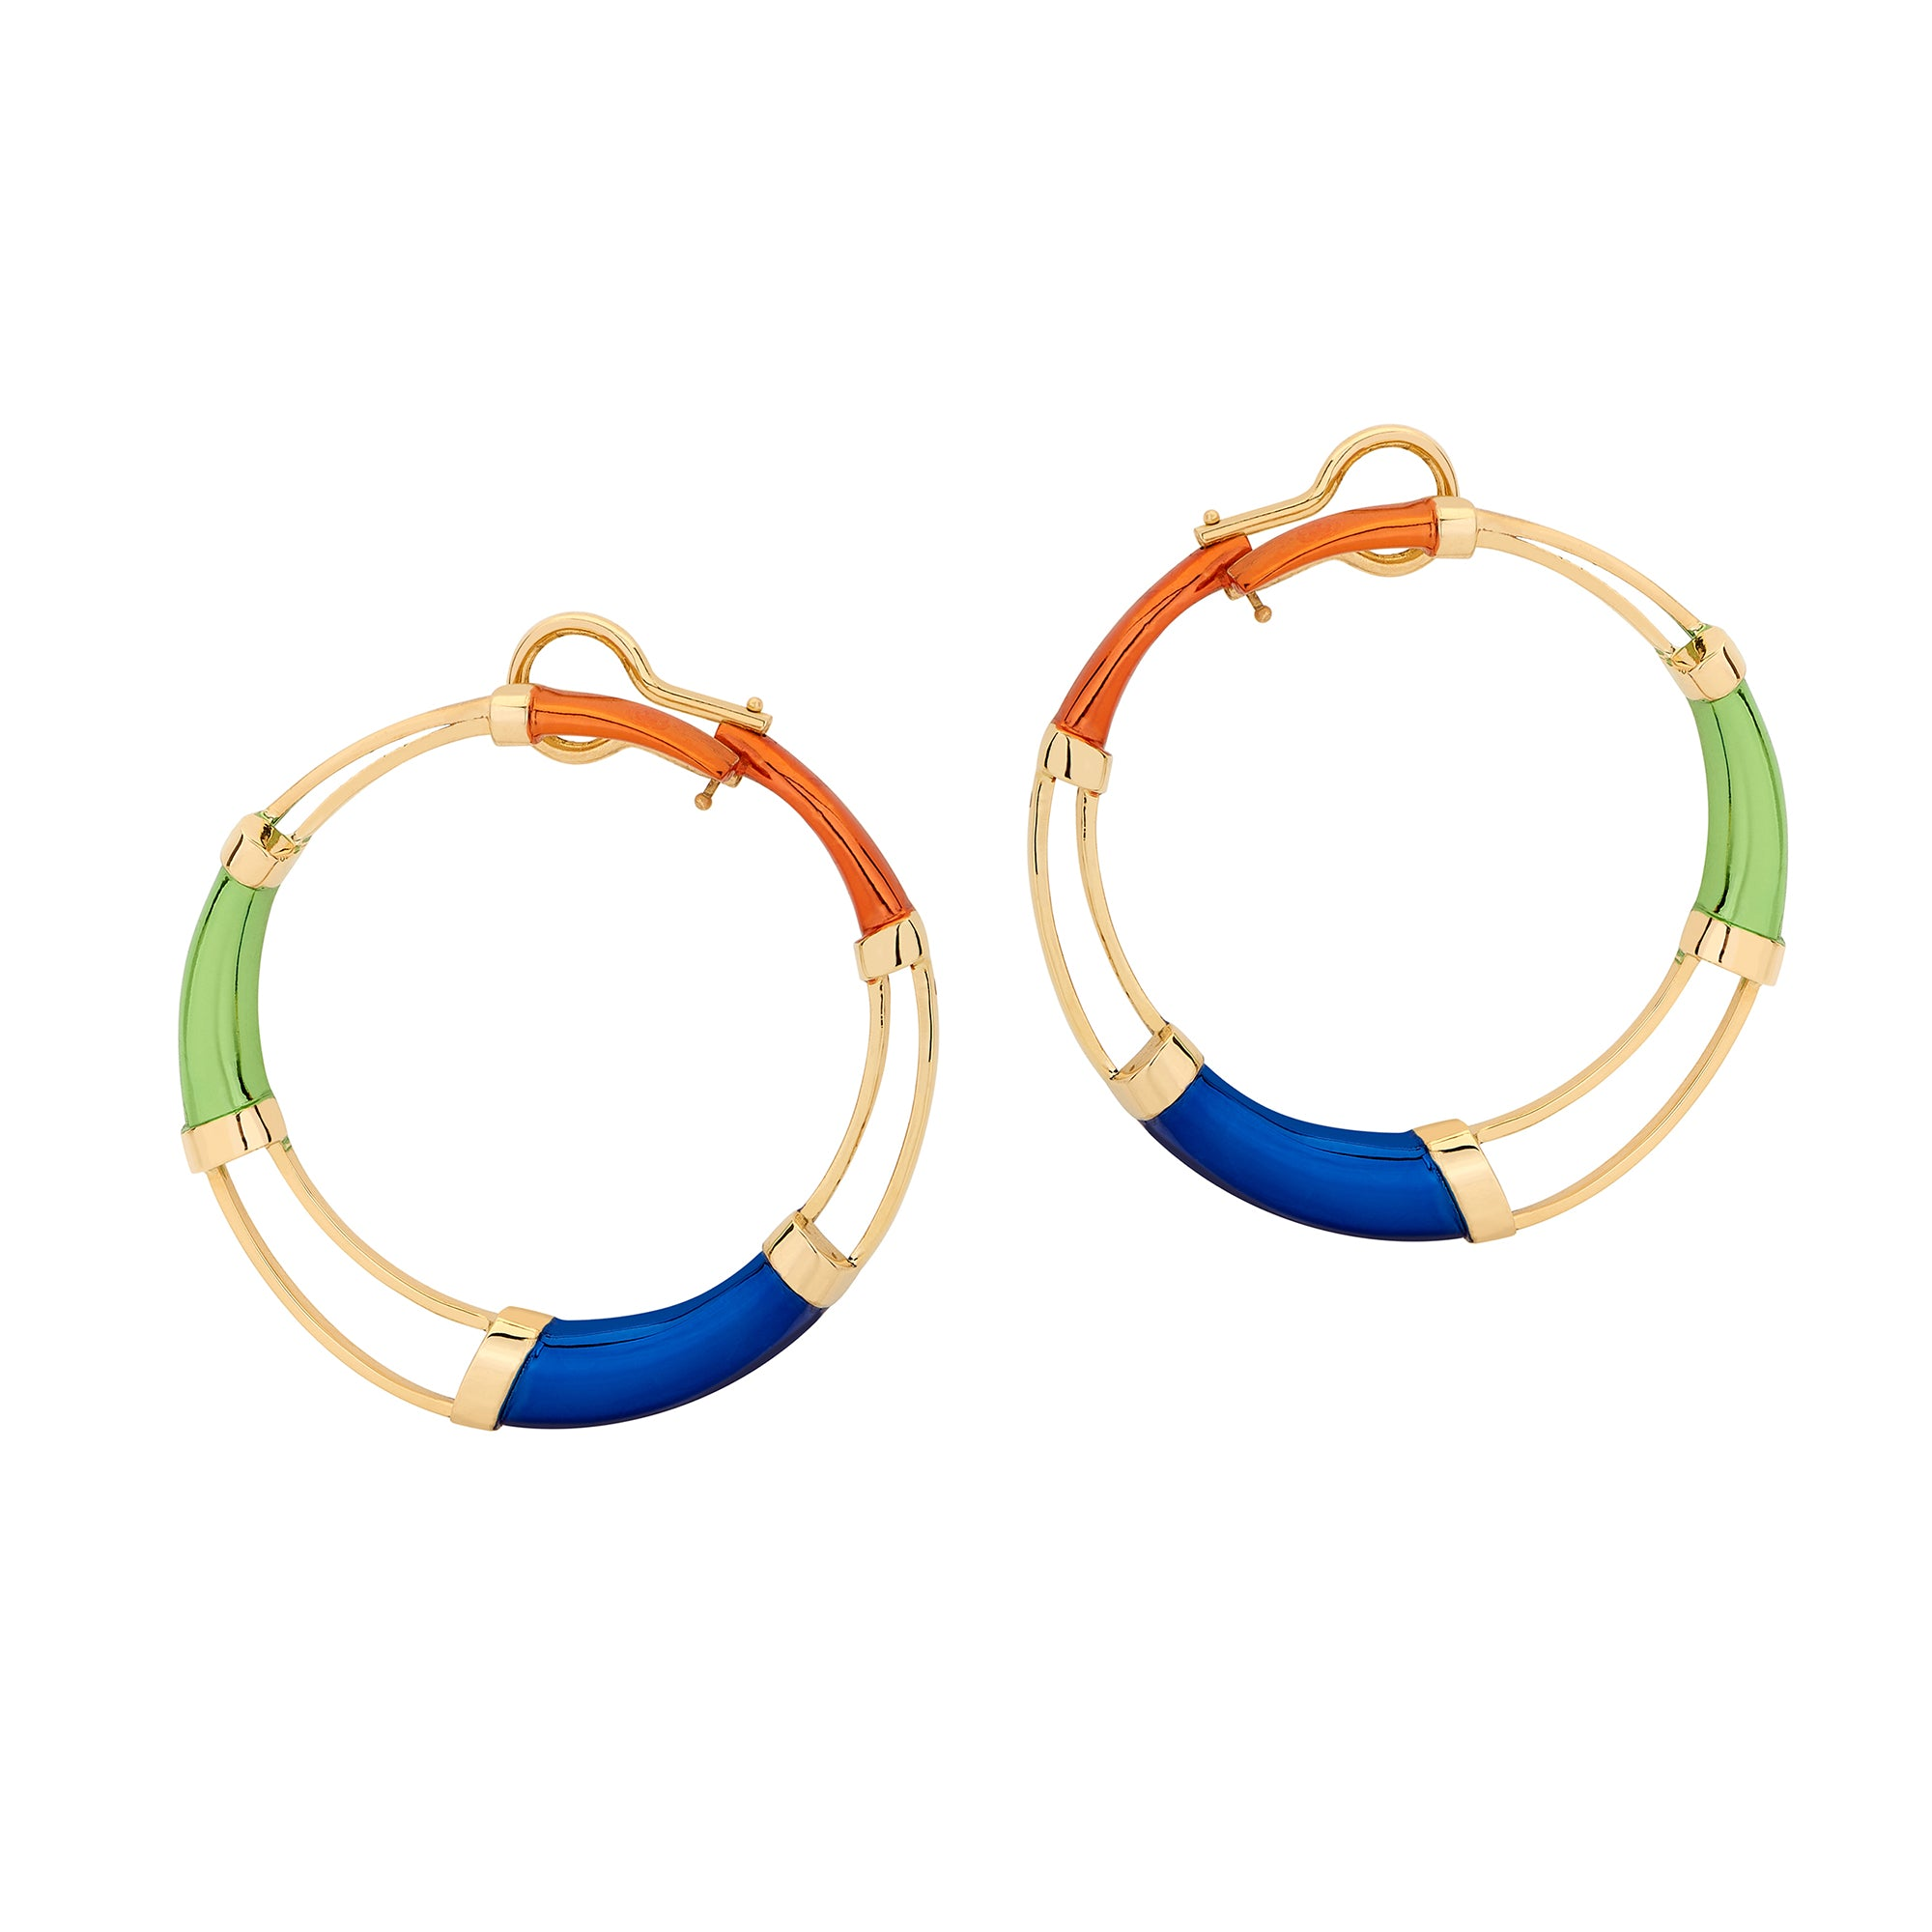 Red Multi Color Hoop Earrings - Carol Kauffman - Earrings | Broken English Jewelry